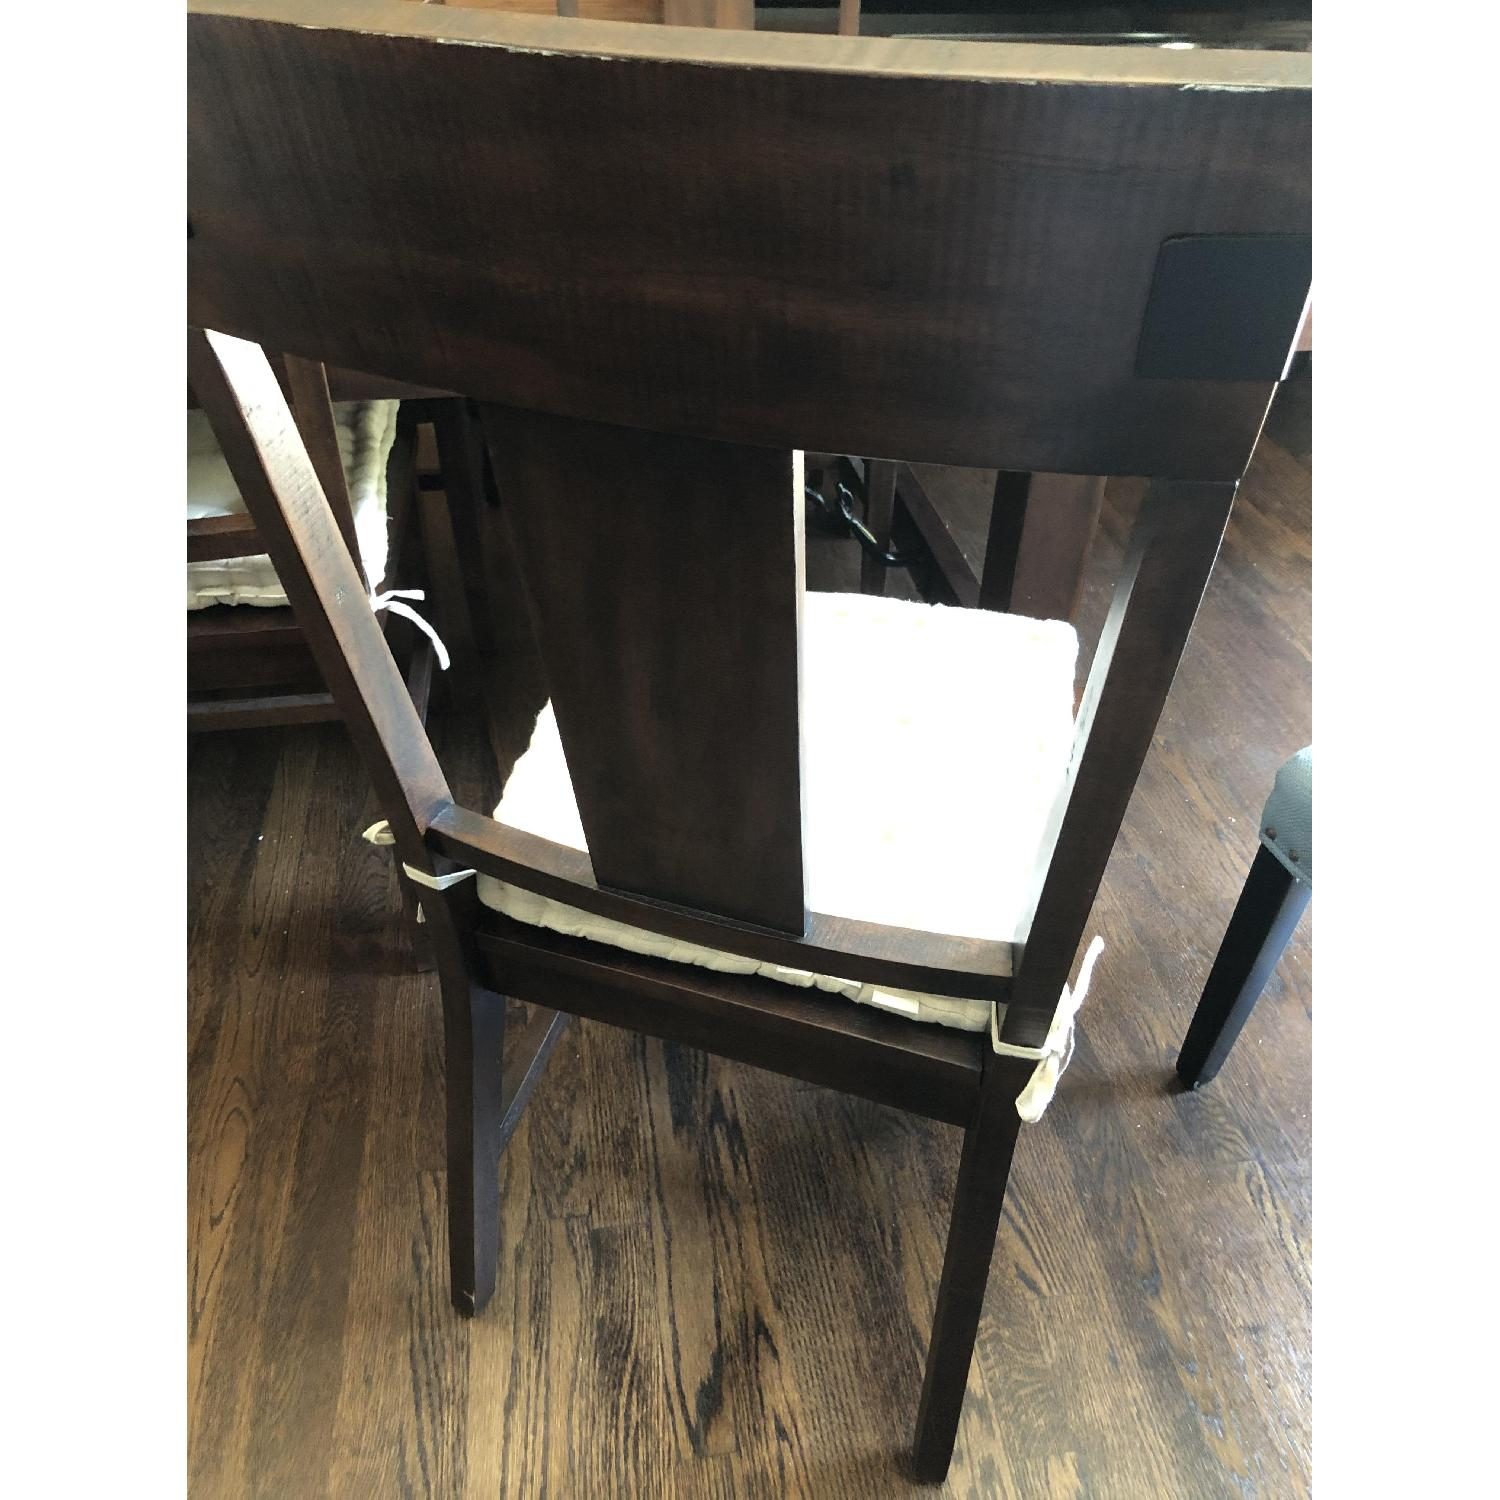 Pier 1 Dining Table w/ 6 Chairs - image-5